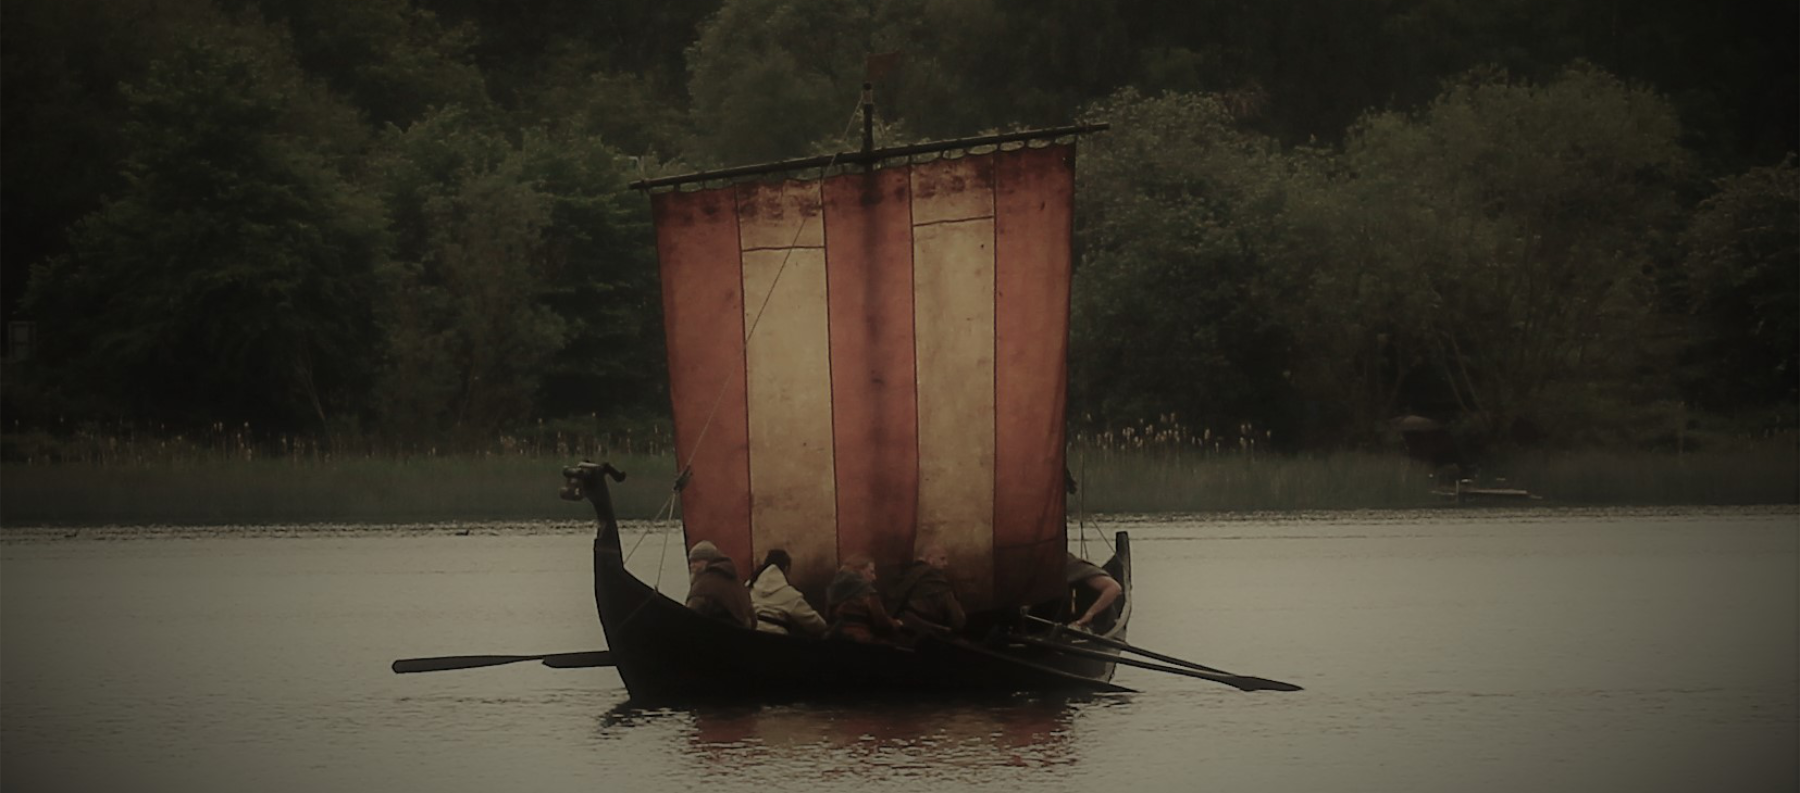 A small Viking boat, propelled by sail and oar